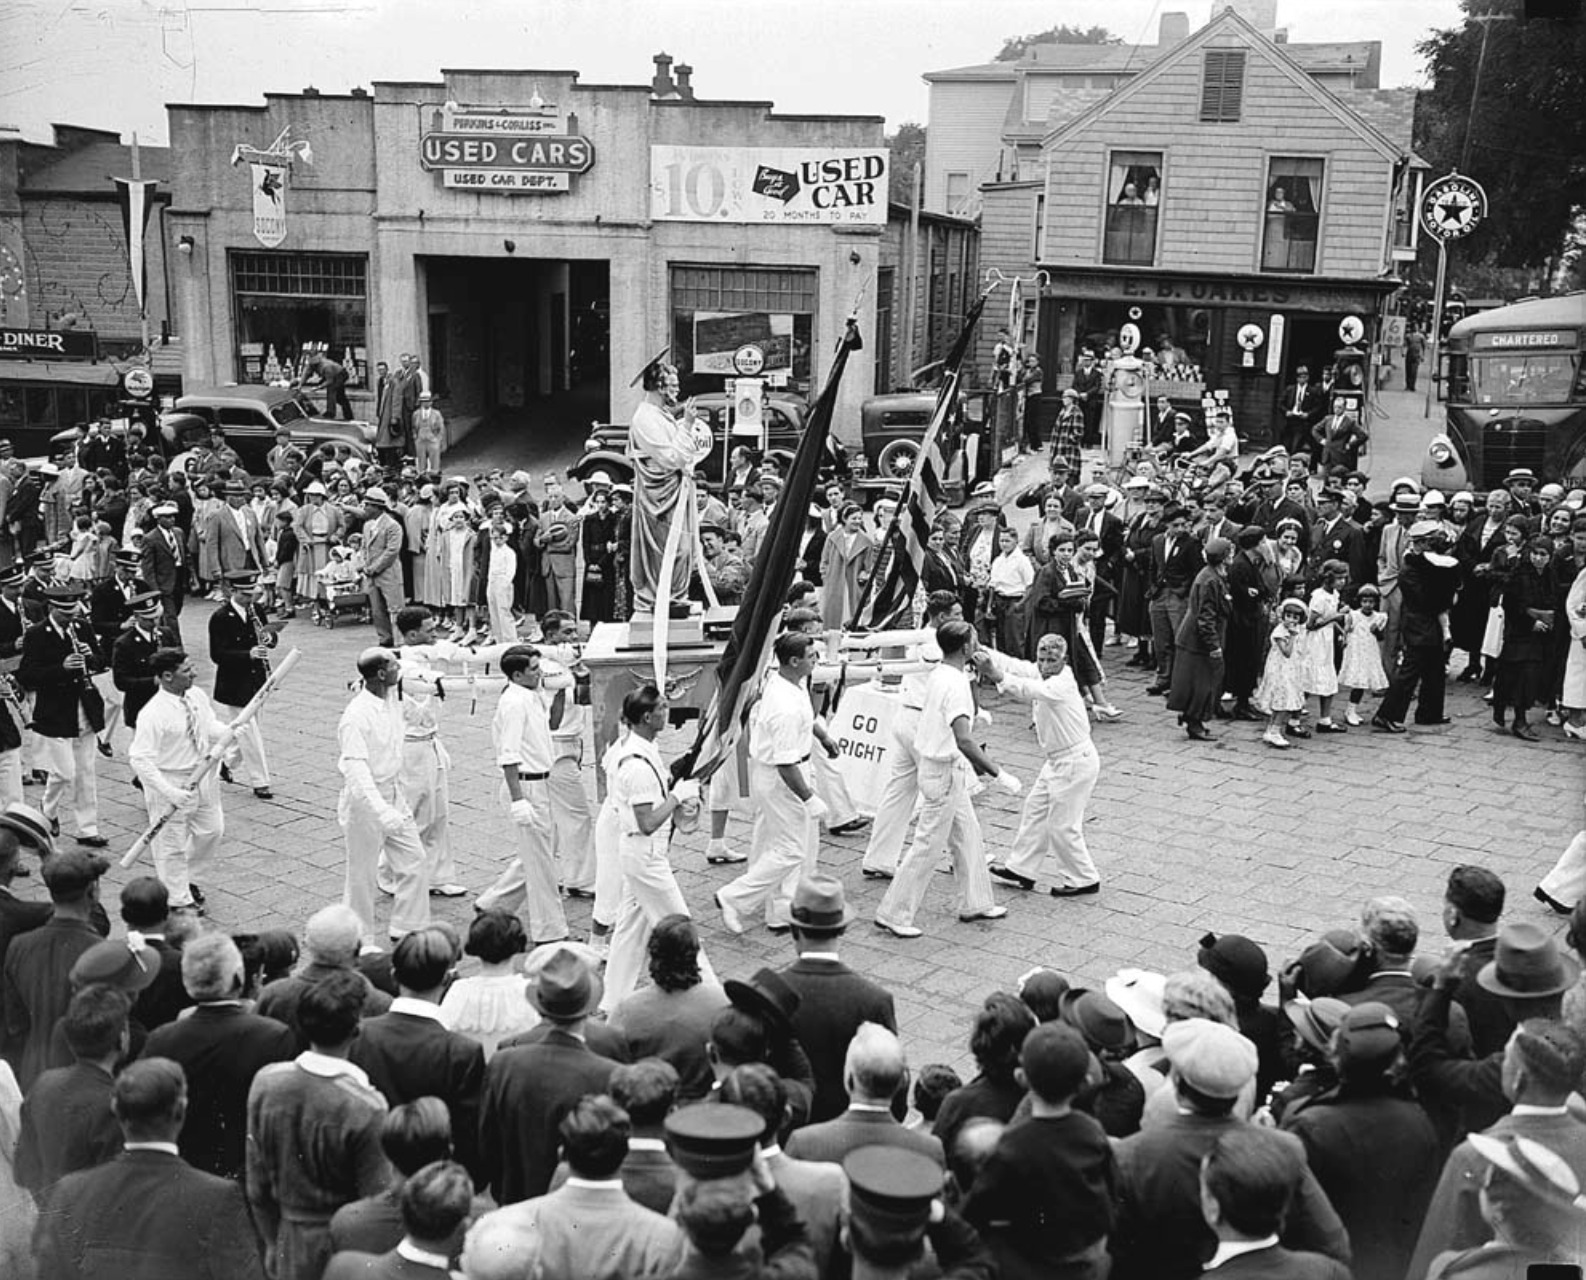 St. Peter's Fiesta procession, c.1935